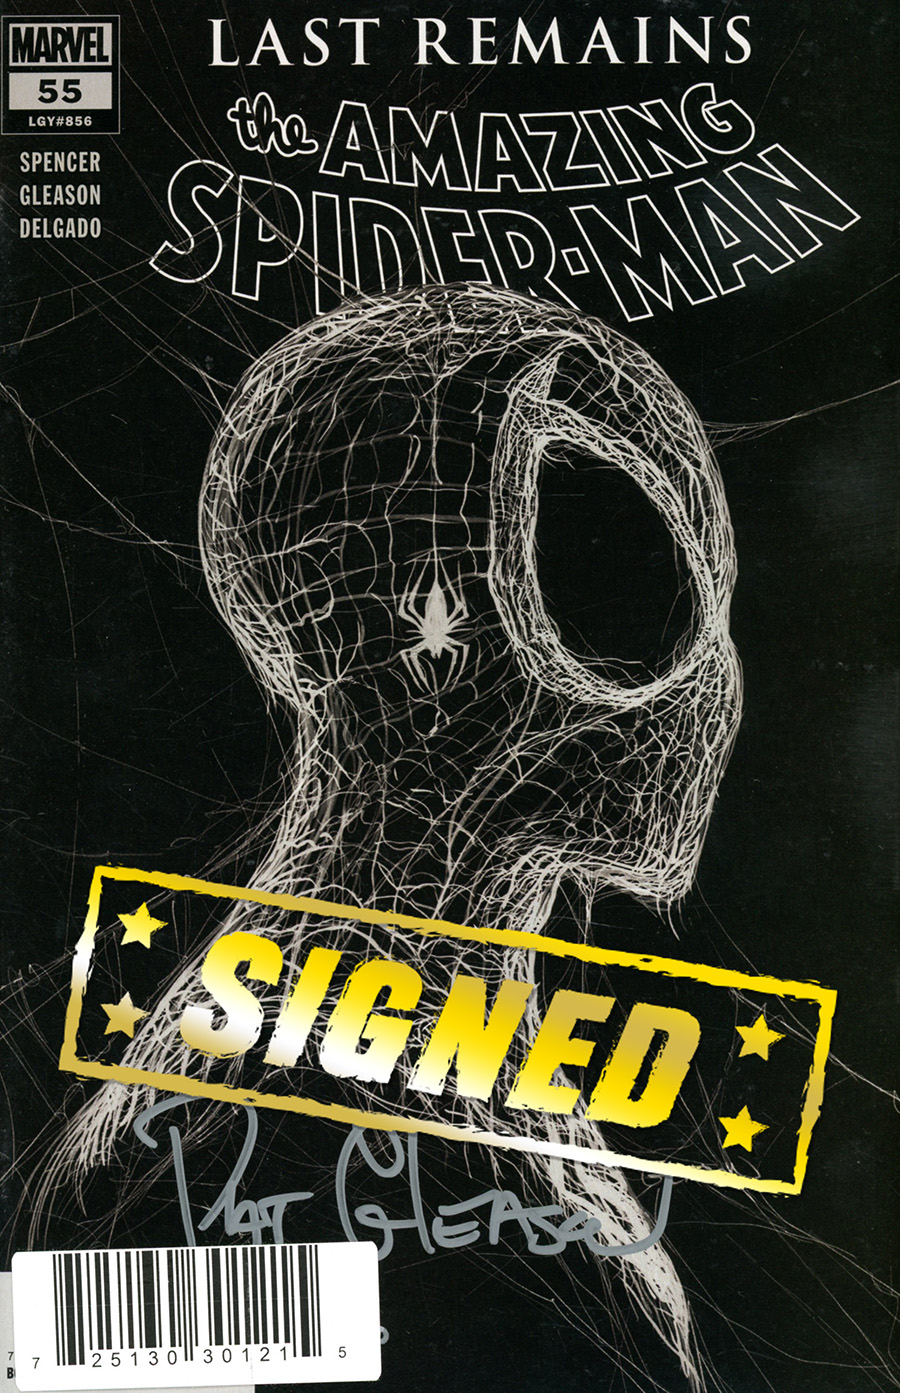 Amazing Spider-Man Vol 5 #55 Cover F DF Silver Symbiote Signature Series Edition Signed By Patrick Gleason